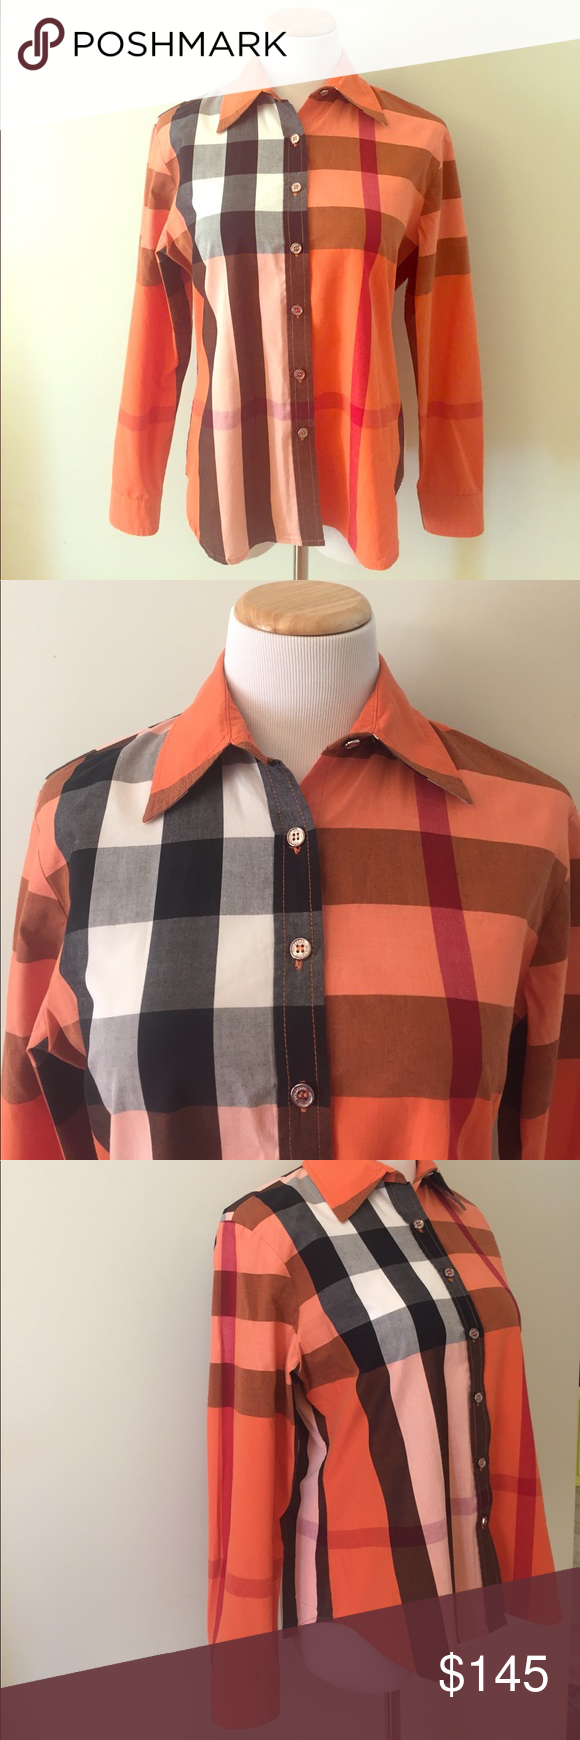 """Burberry Button Down Shirt Size M This Burberry button down shirt size M is in orange Burberry plaid print and in excellent pre-owned condition. No stains, rips or odors! A classical piece of Burberry collection! Armpit to armpit laying flat is 20"""" and it is approx. 25"""" long. Burberry Tops Button Down Shirts"""